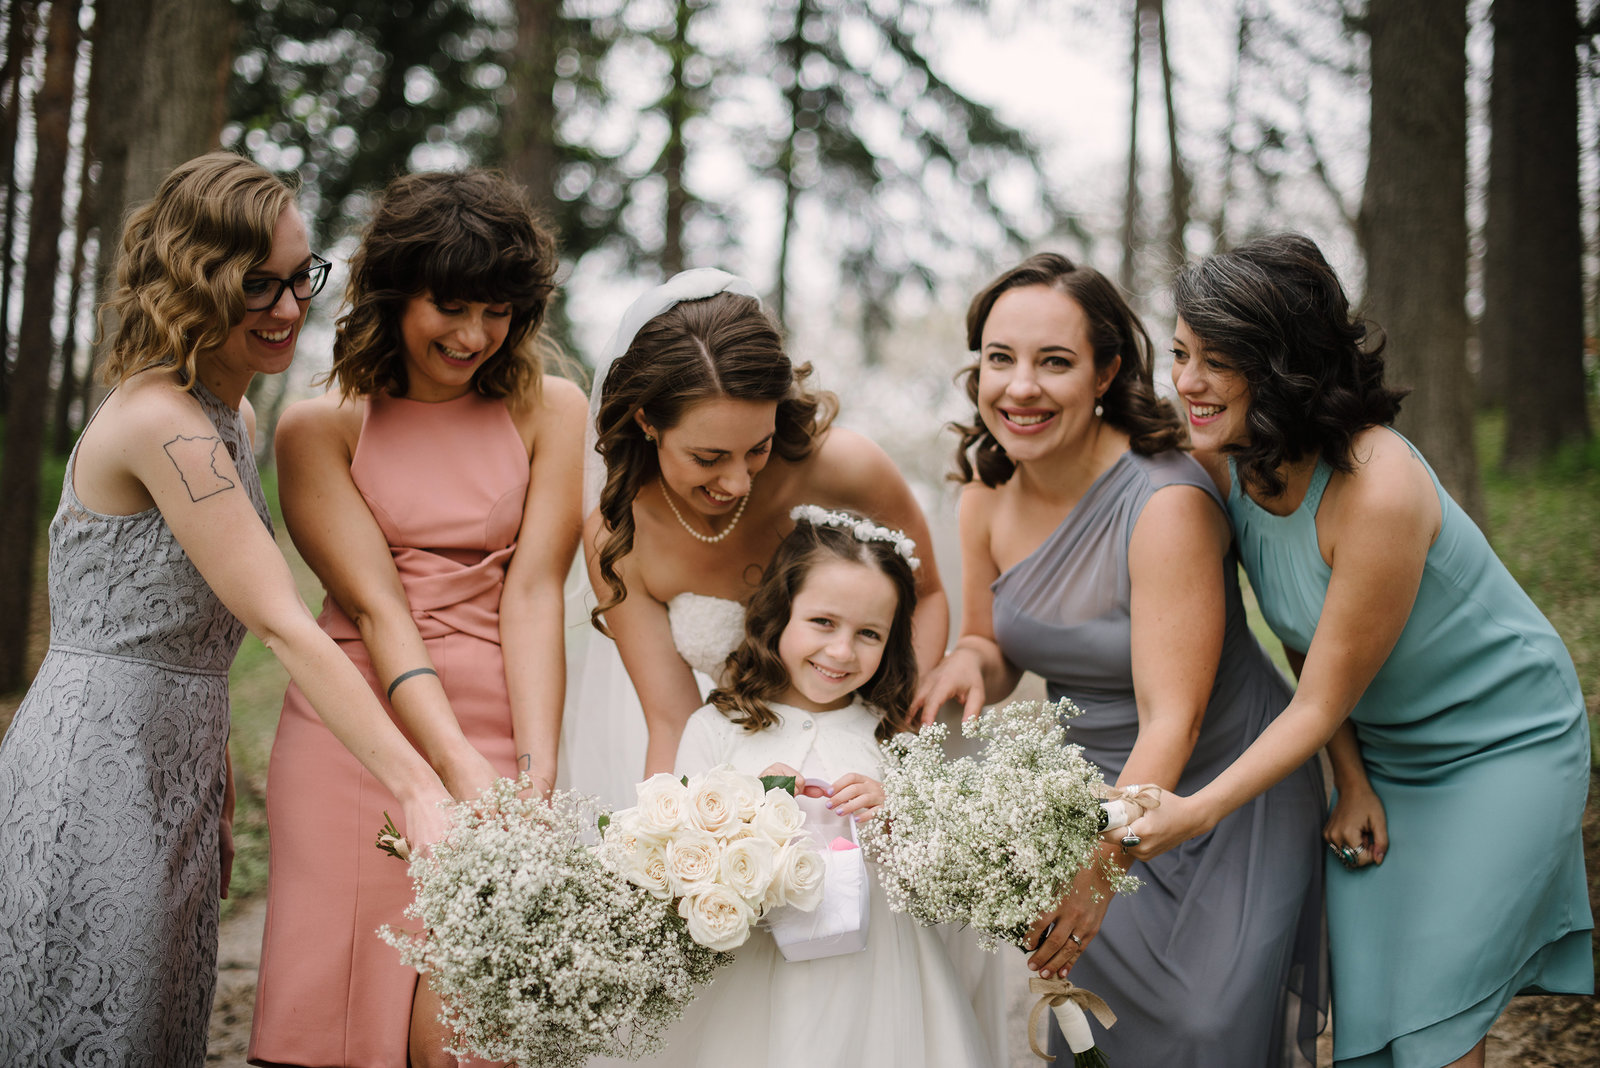 7 Bridesmaids Minnesota Wedding Photos 0648